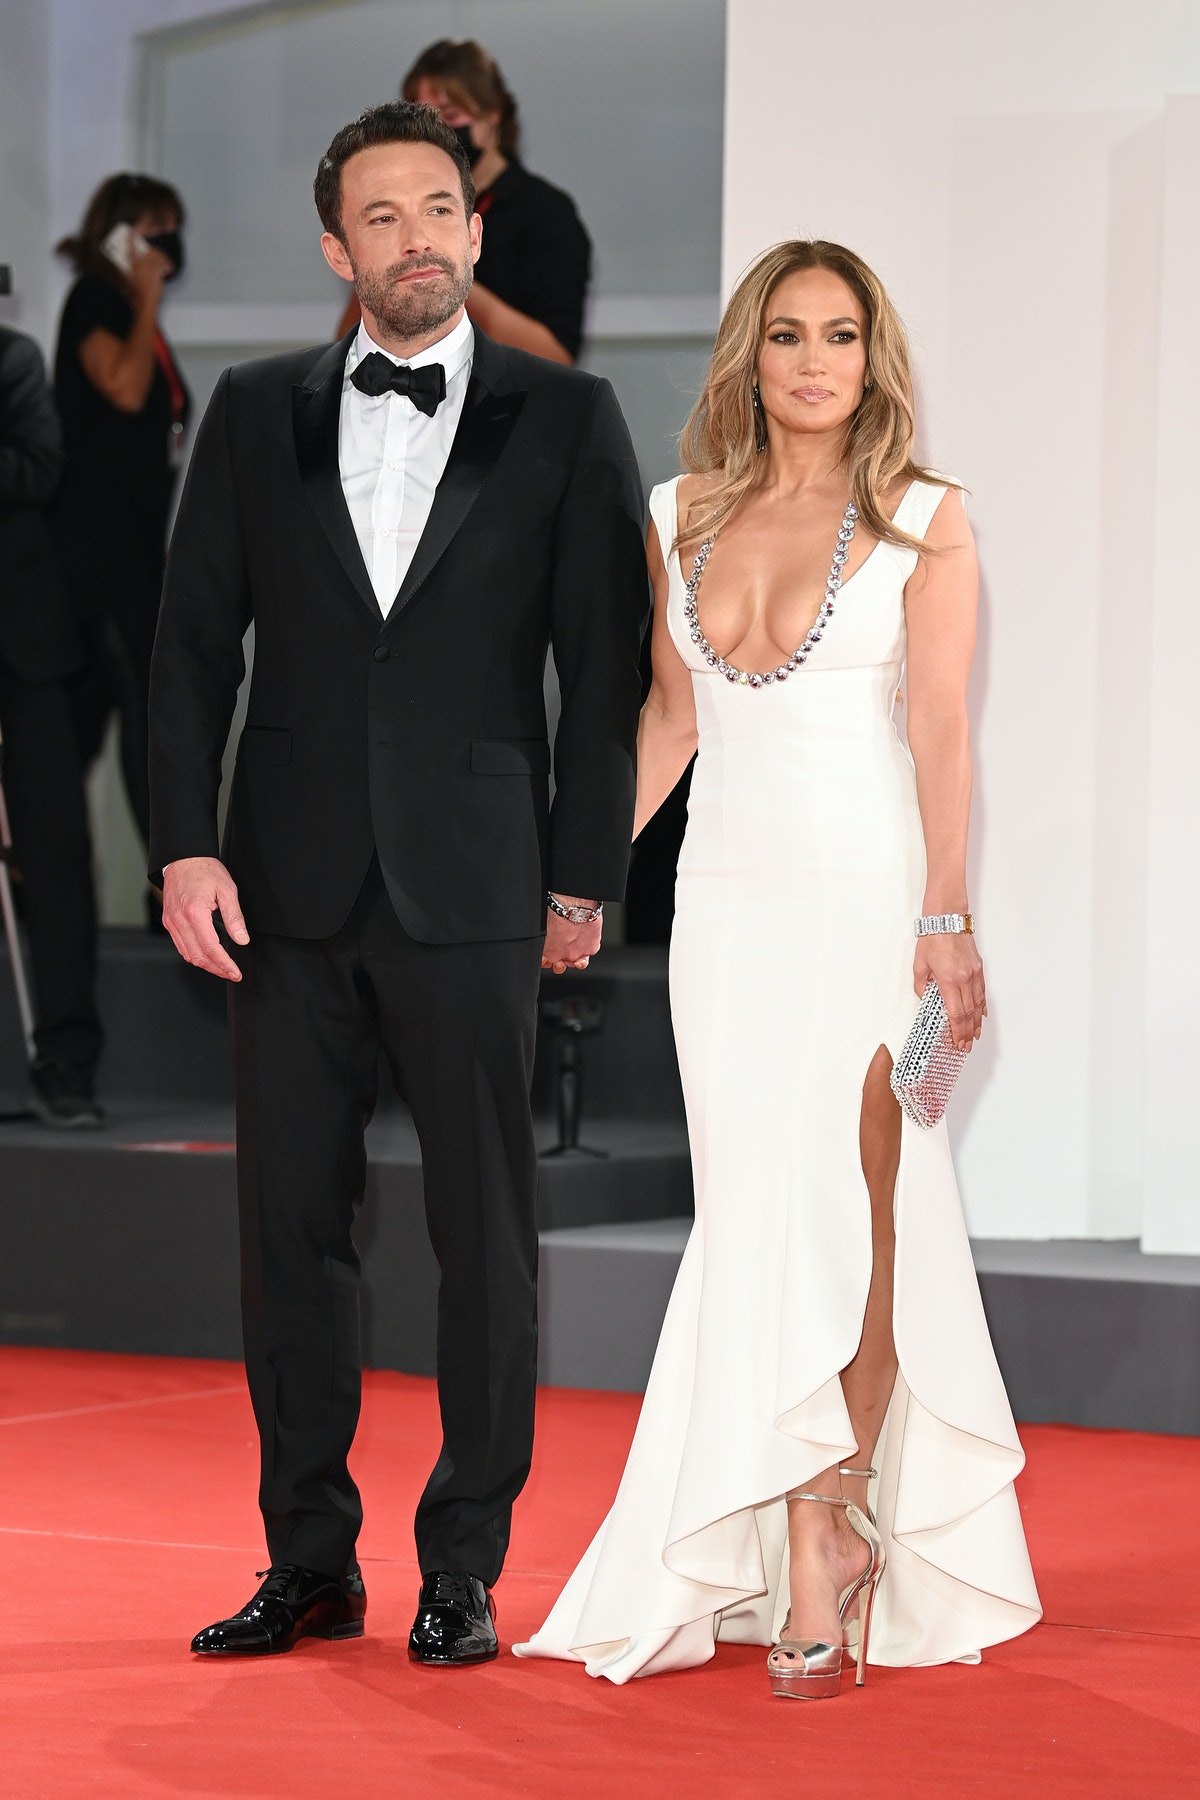 """VENICE, ITALY - SEPTEMBER 10: Ben Affleck and Jennifer Lopez attend the red carpet of the movie """"The..."""